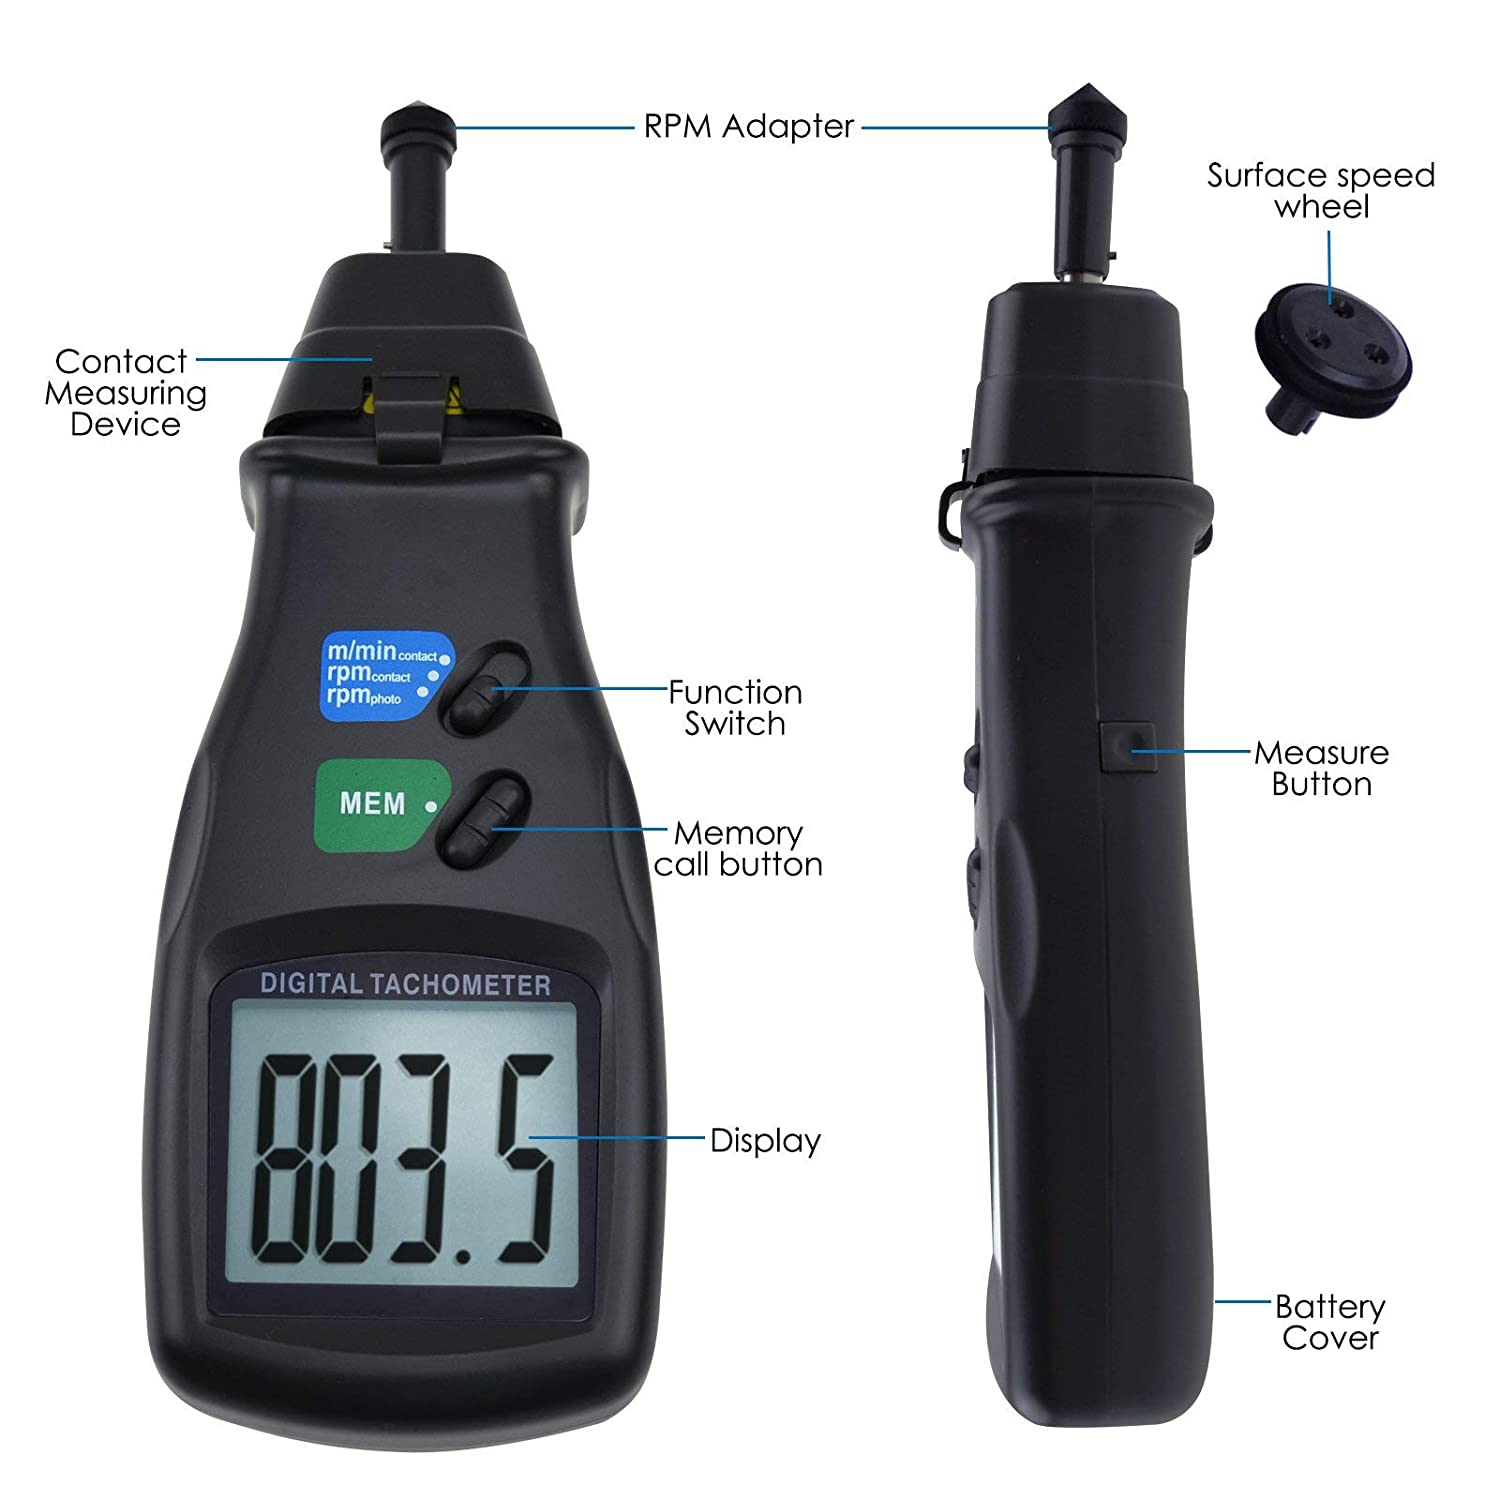 0.5~19999 RPM Contact Measurement Speed Tach Meter Rotation Tester with LCD Backlight Display Tachometers SH-CHEN Digital Tachometer